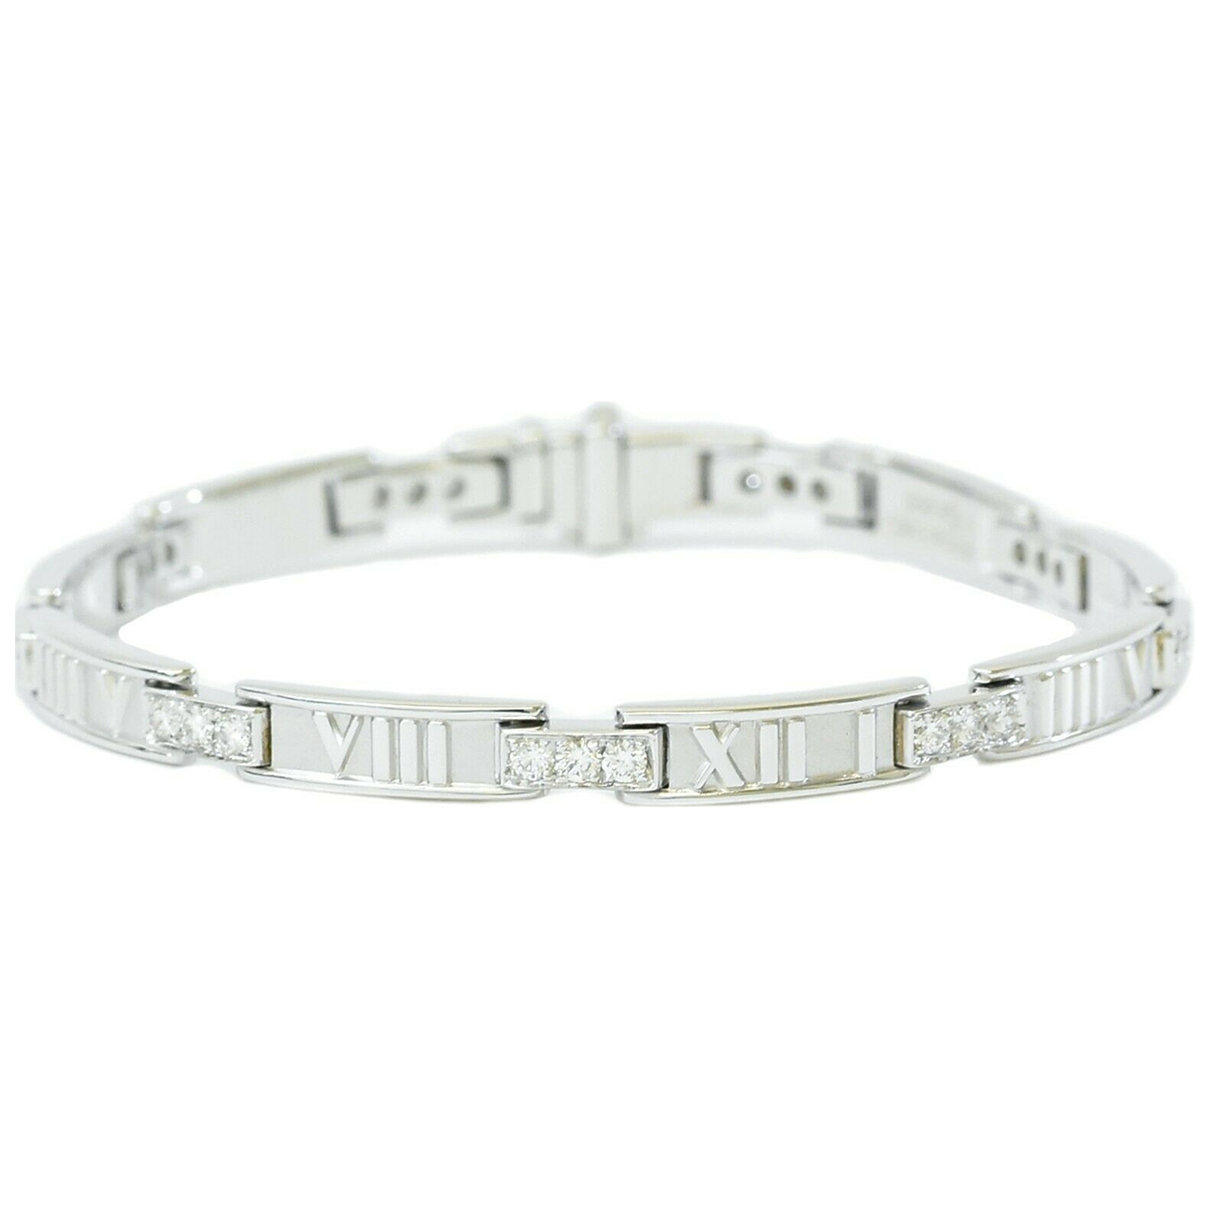 Tiffany & Co Atlas Armband in  Weiss Weissgold